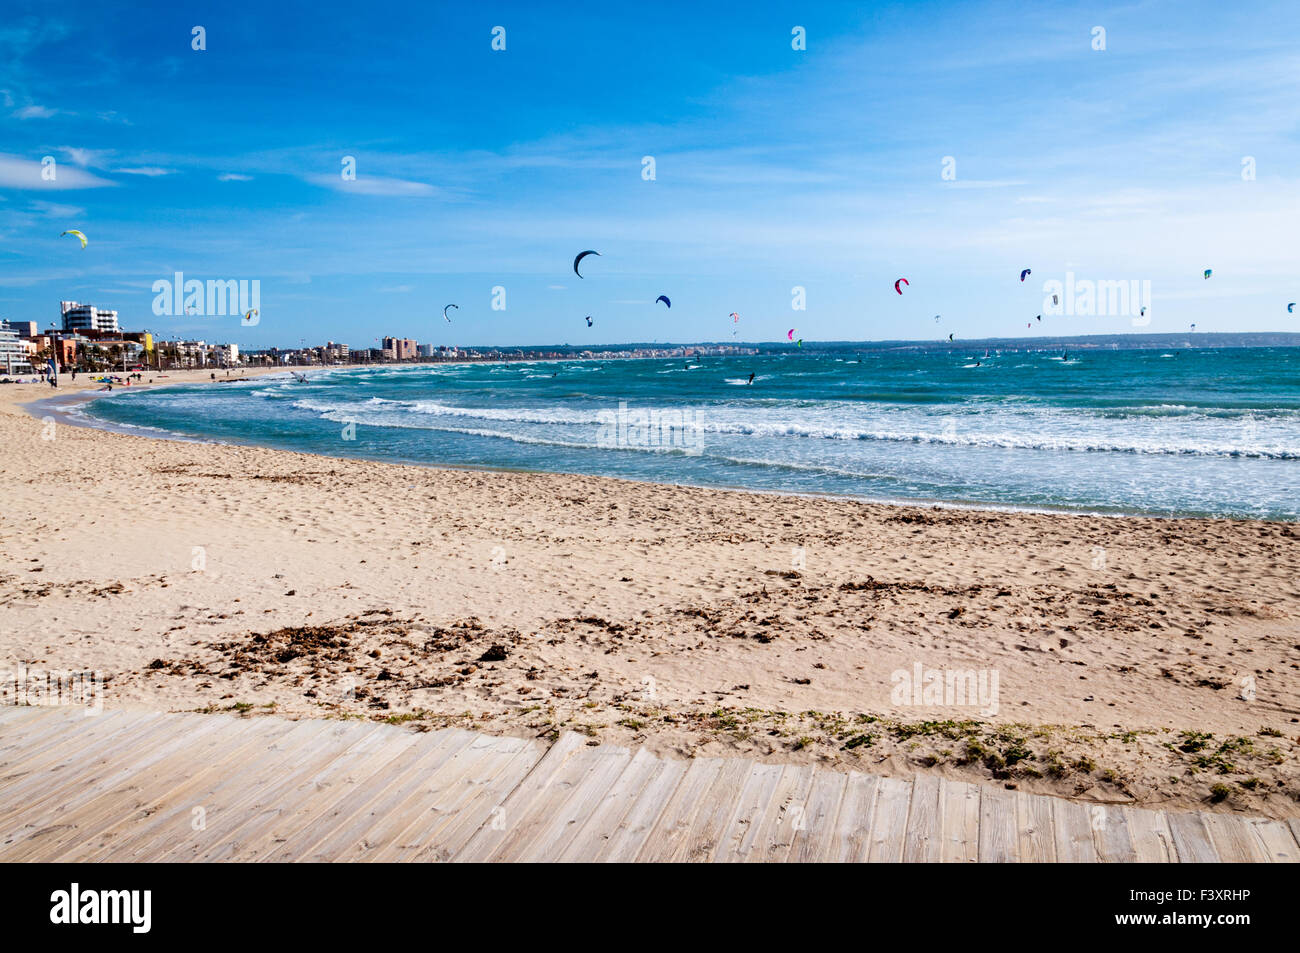 Kitesurfers in Playa de Palma in February - Stock Image